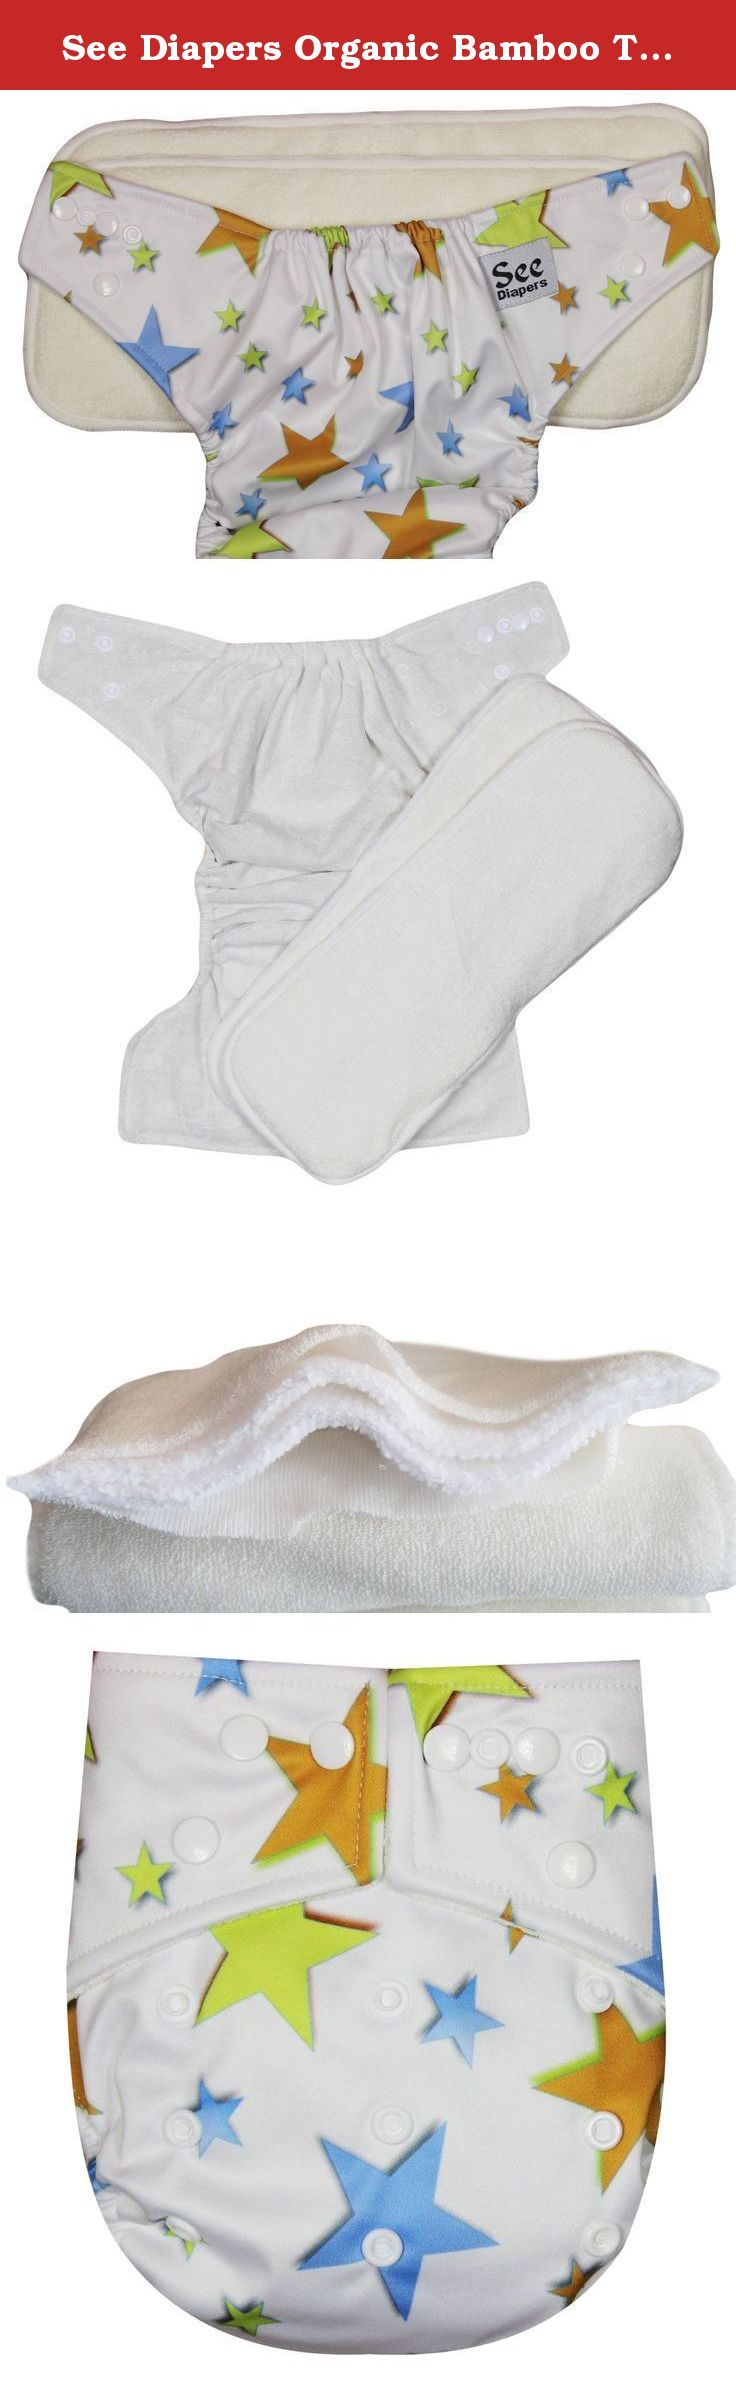 See Diapers Organic Bamboo Terry Baby Cloth Diaper - 2 Bamboo Inserts Stars. This Organic Bamboo One Size Pocket Diaper consist of 2 parts: a waterproof outer shell + 2 large Grade A Organic bamboo inserts. The outer shell is made of high quality, durable and soft fabric. Laminated with the new and improved Thermoplastic Polyurethane (TPU), a composition specifically adapted to produce non-porous membranes exhibiting waterproof and water vapor transmissible. The result is a high…